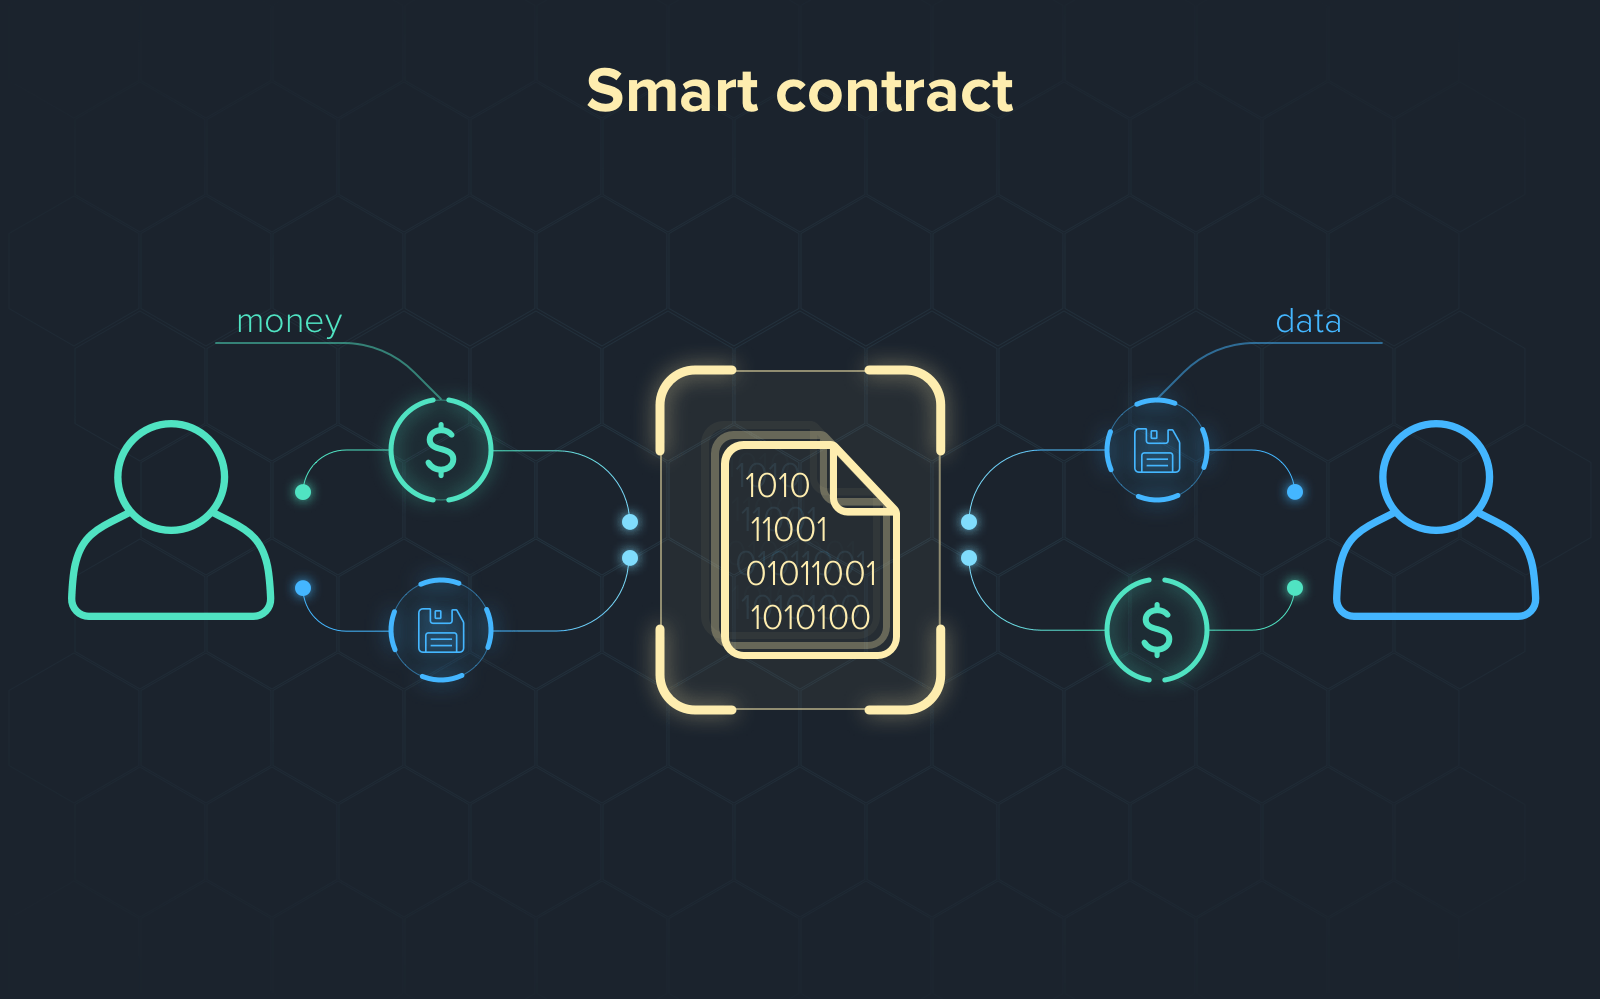 Cardano will soon launch smart contracts